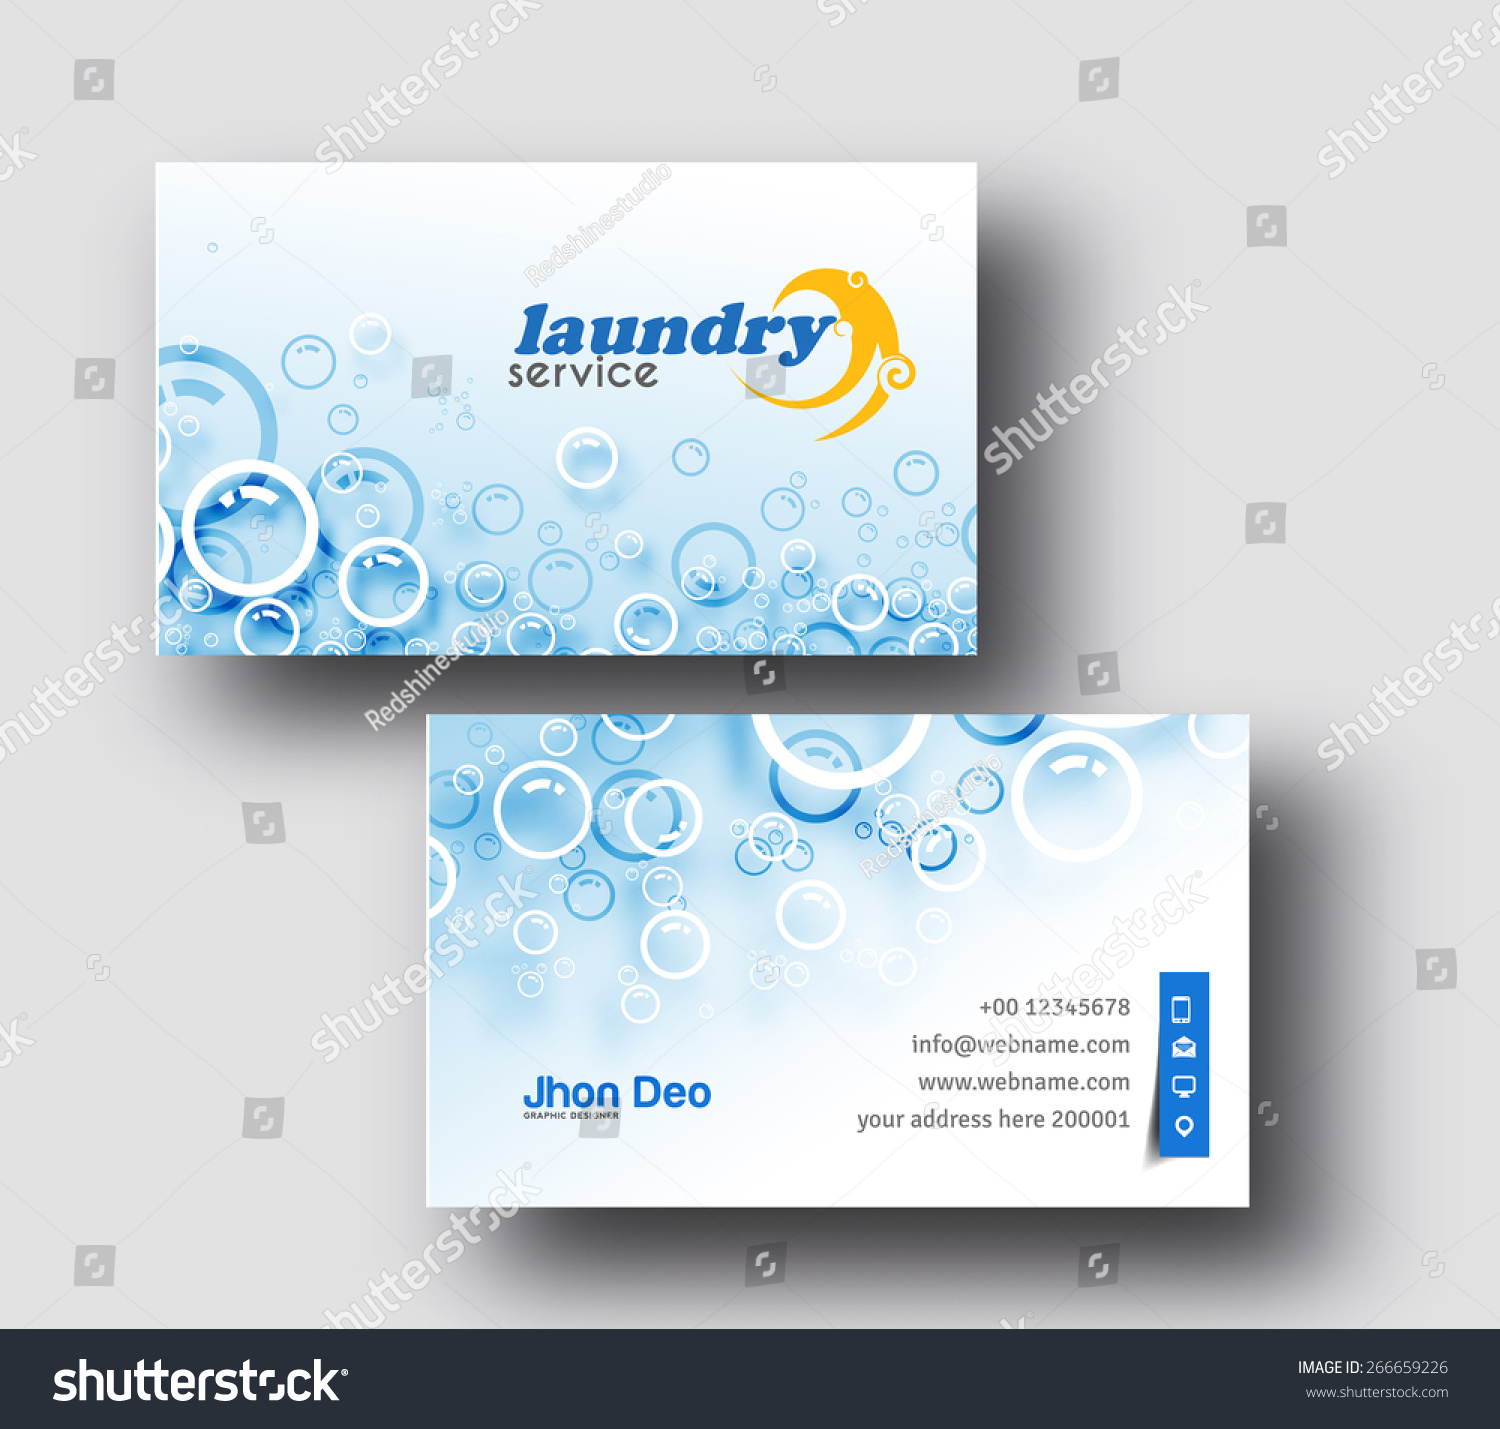 Laundry service business card vector template em vetor stock laundry service business card vector template reheart Images